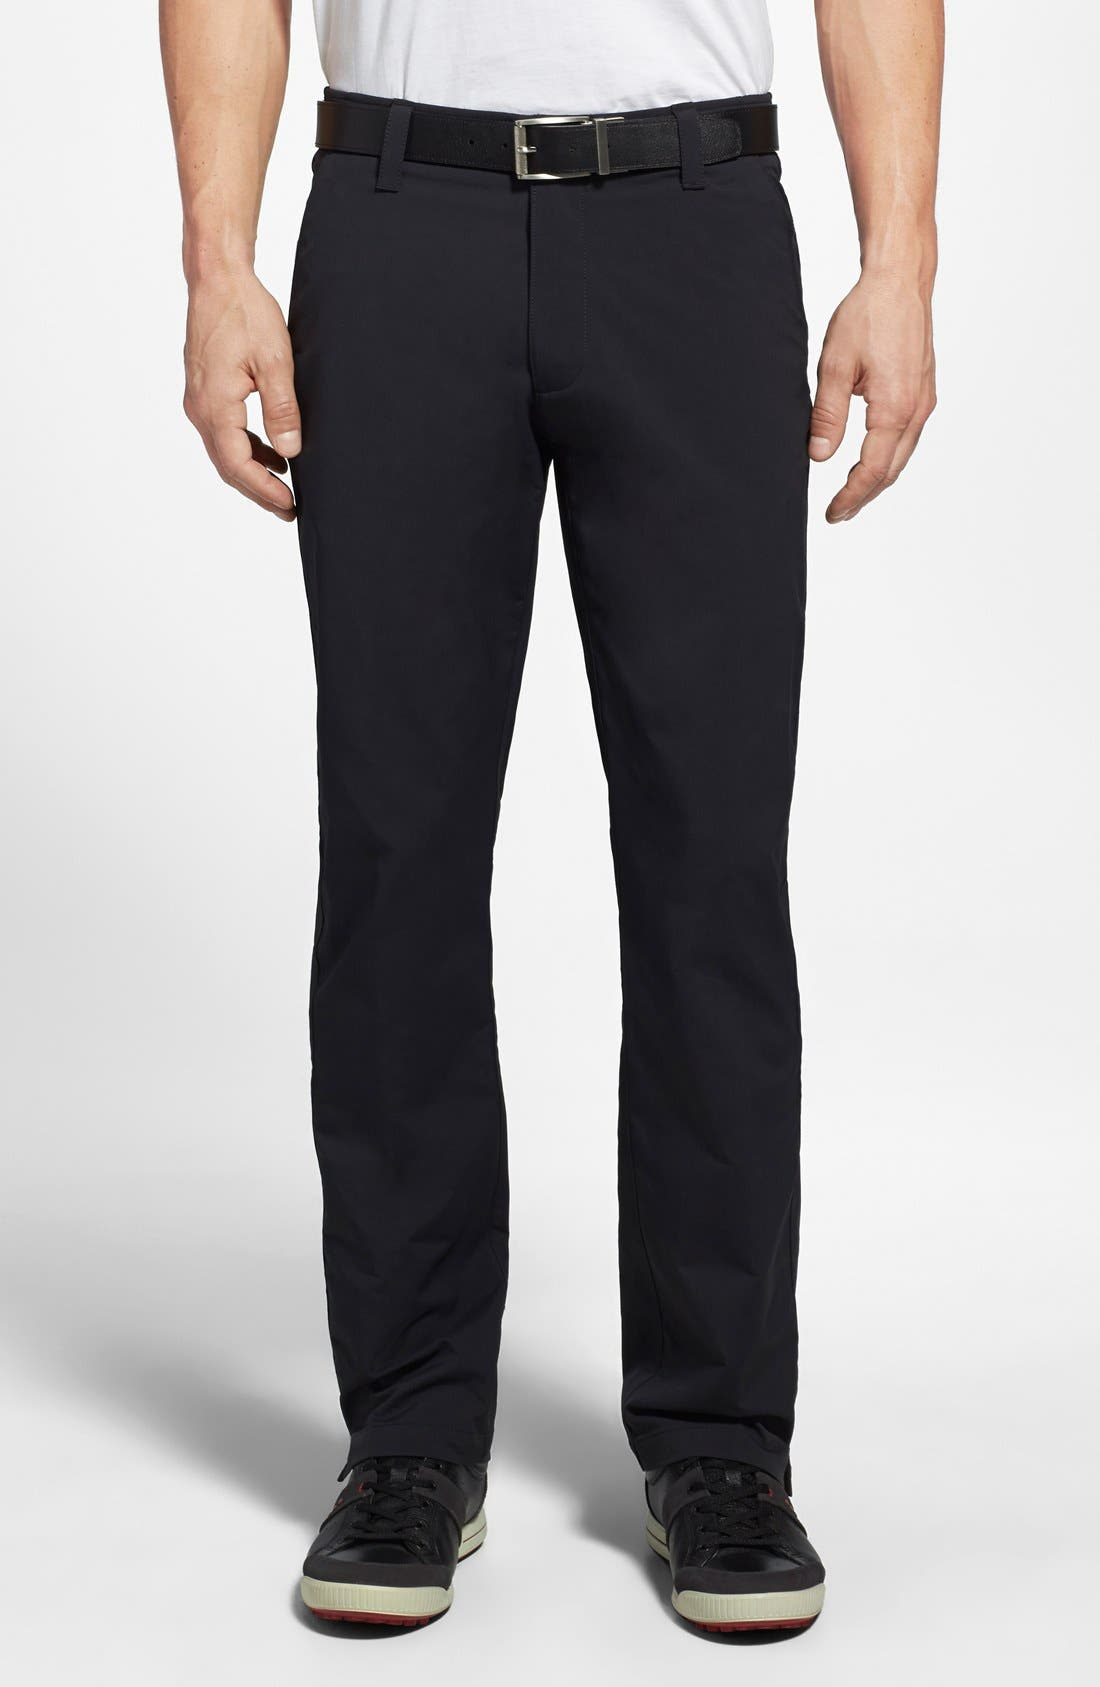 Main Image - Under Armour 'Matchplay' Pants